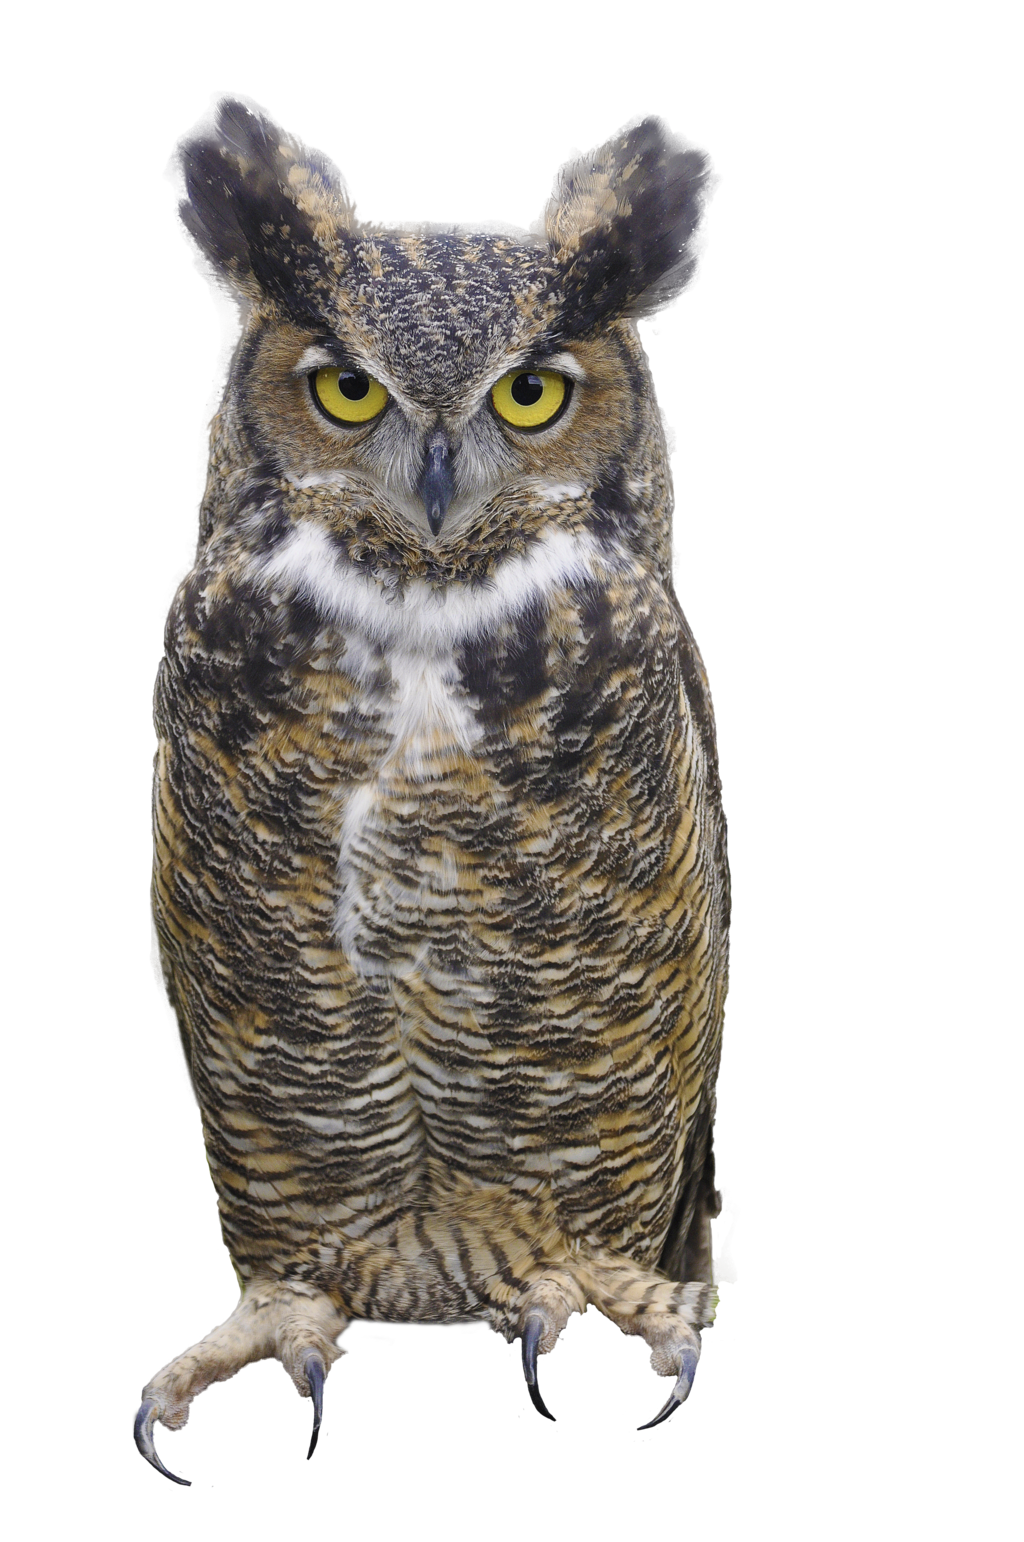 Png Images Of Owls - Owl Picture PNG Image - Images Owls PNG HD